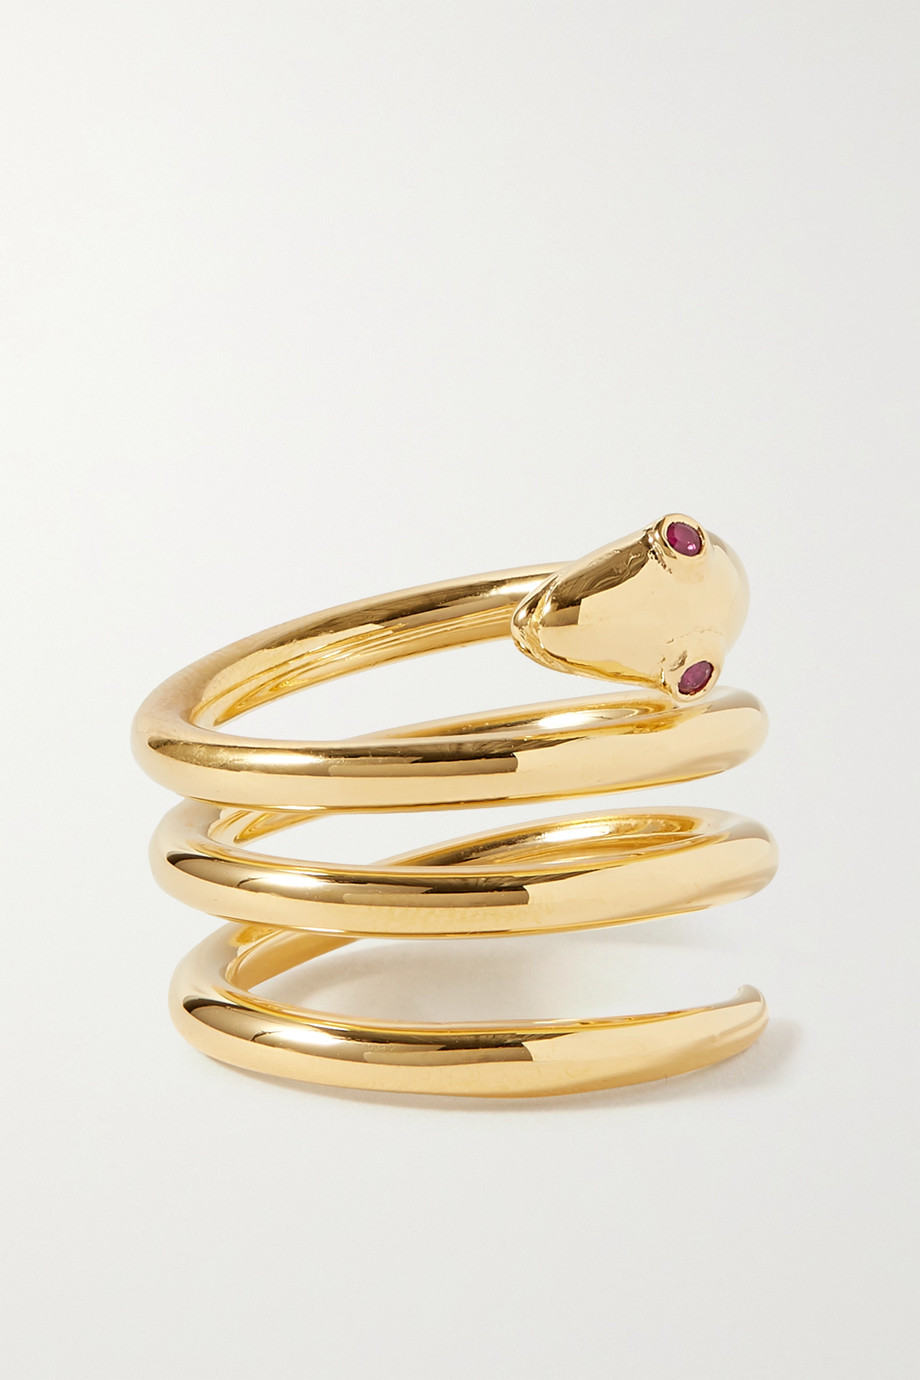 Sophie Buhai + NET SUSTAIN gold vermeil ruby ring